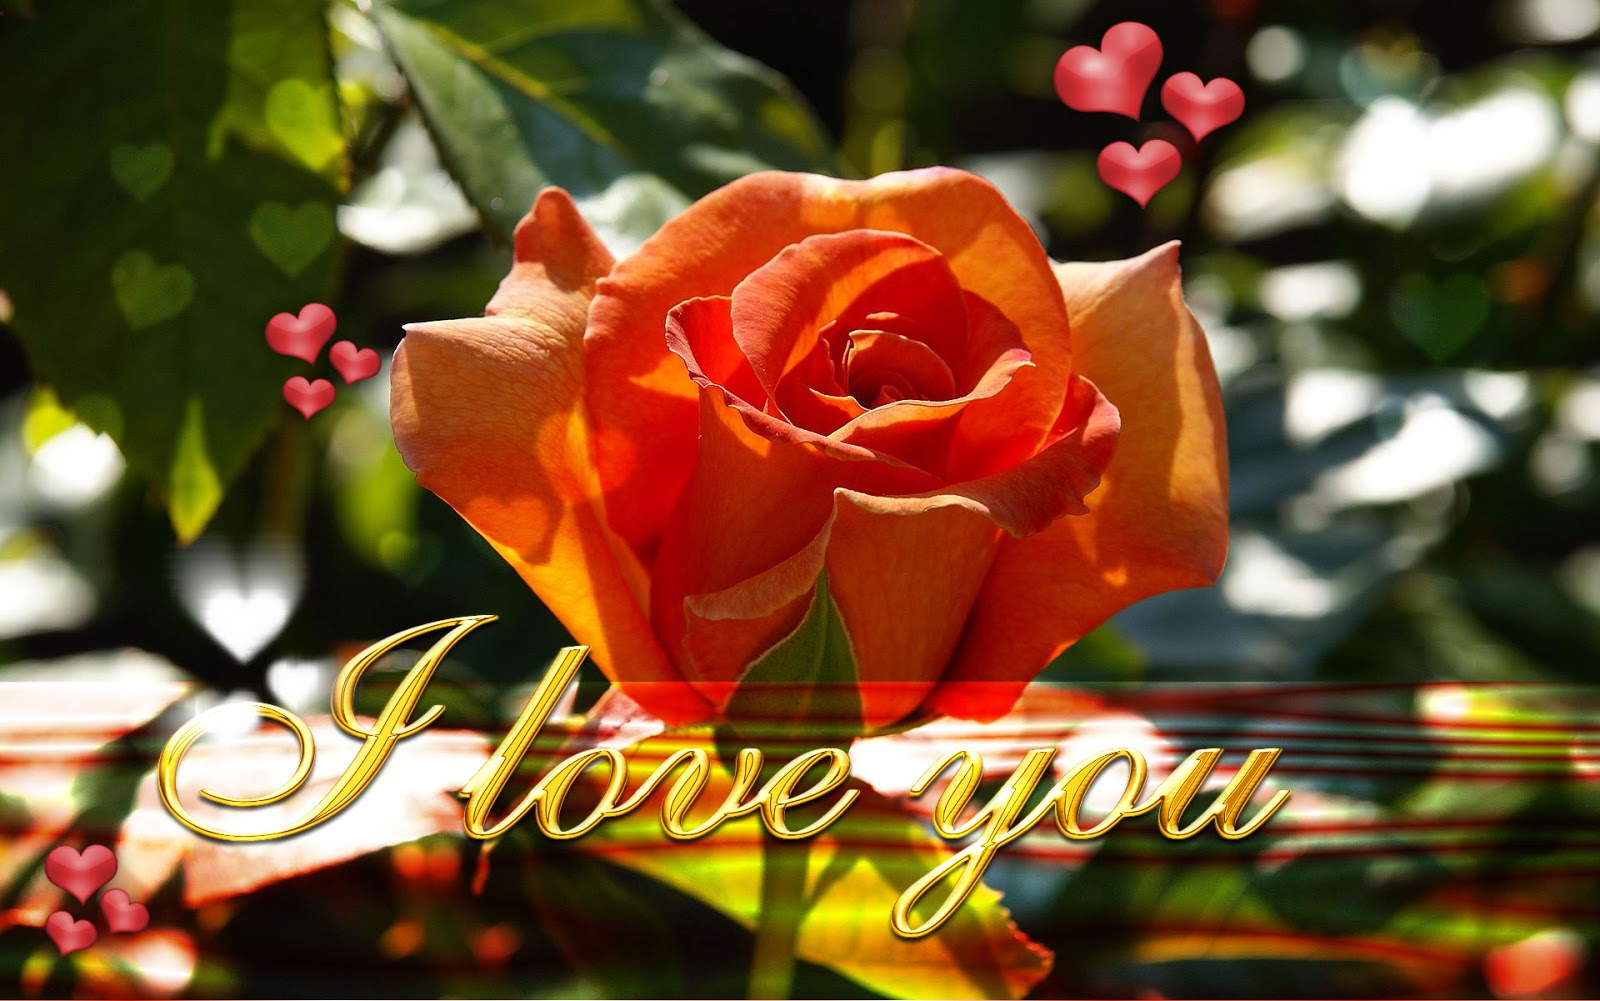 Wallpaper download in love - Http 2 Bp Blogspot Com 0od03wganfu Uowpl6zmy5i New Latest I Love You Wallpapers